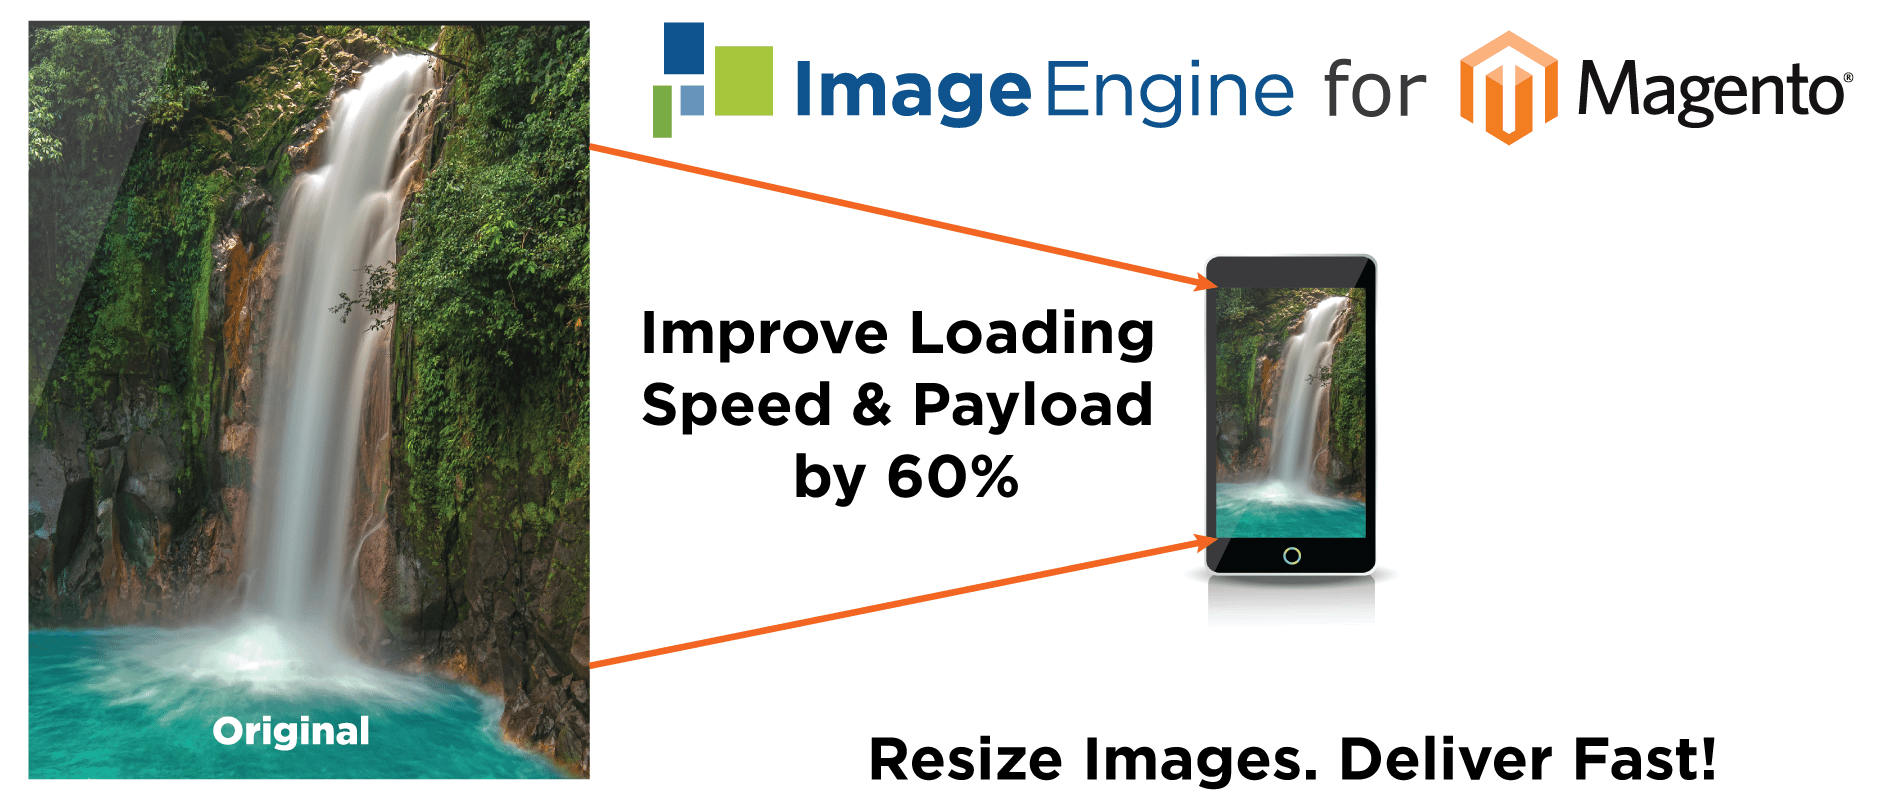 ImageEngine for Magento resizes images, improves speed by 60 percent